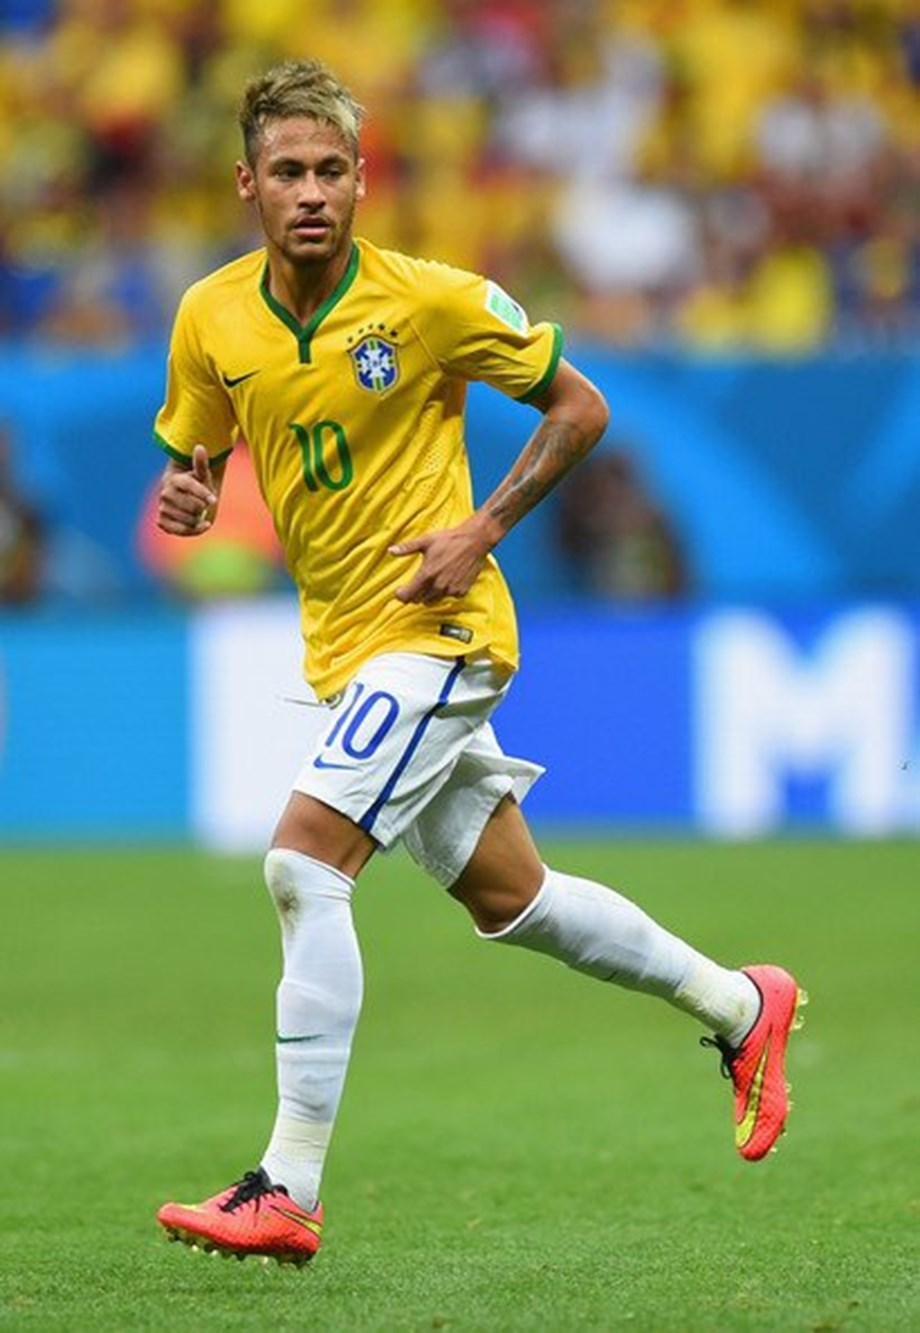 Neymar participating normally in team's activity says Brazilian soccer federation